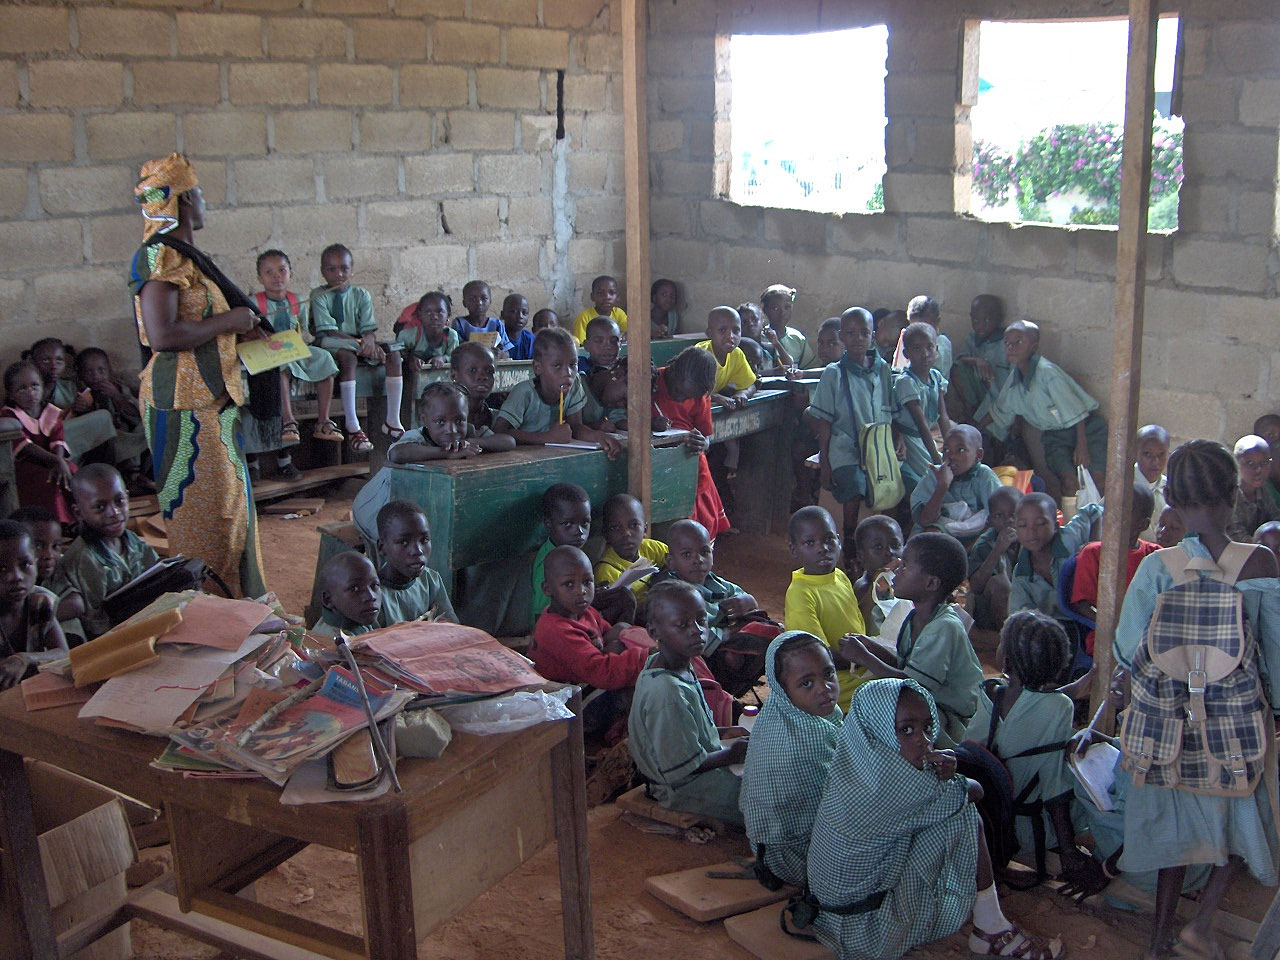 Nigeria's Ailing Education: Who Has Failed, Parents Or Teachers